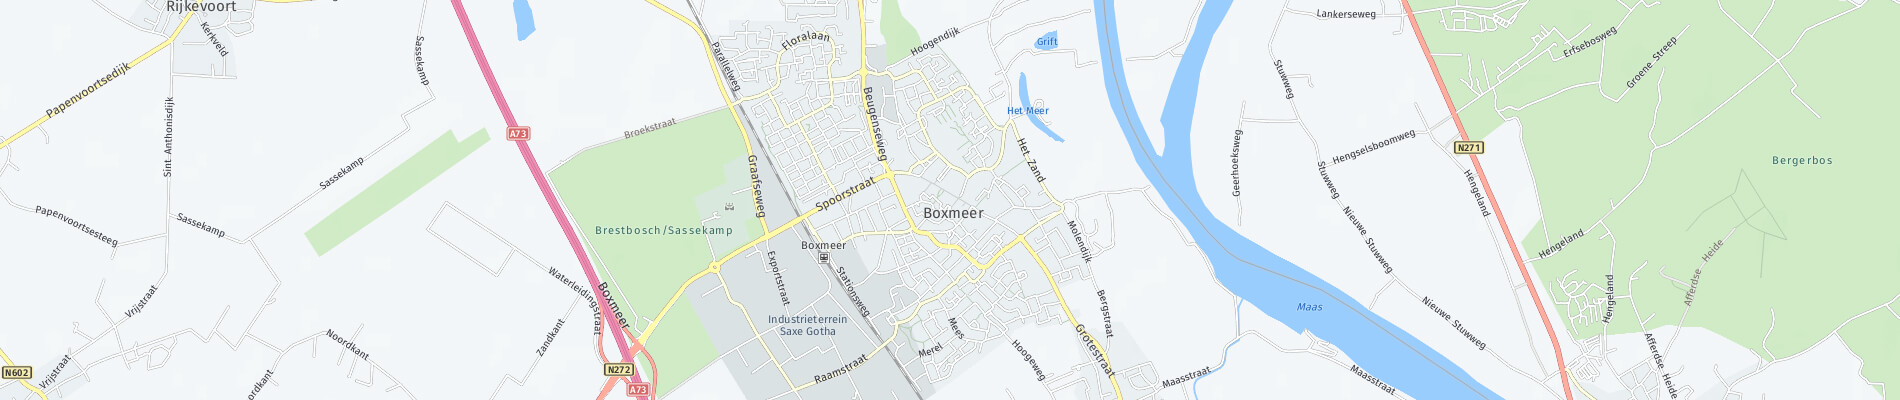 assets/images/cities/boxmeer.jpg